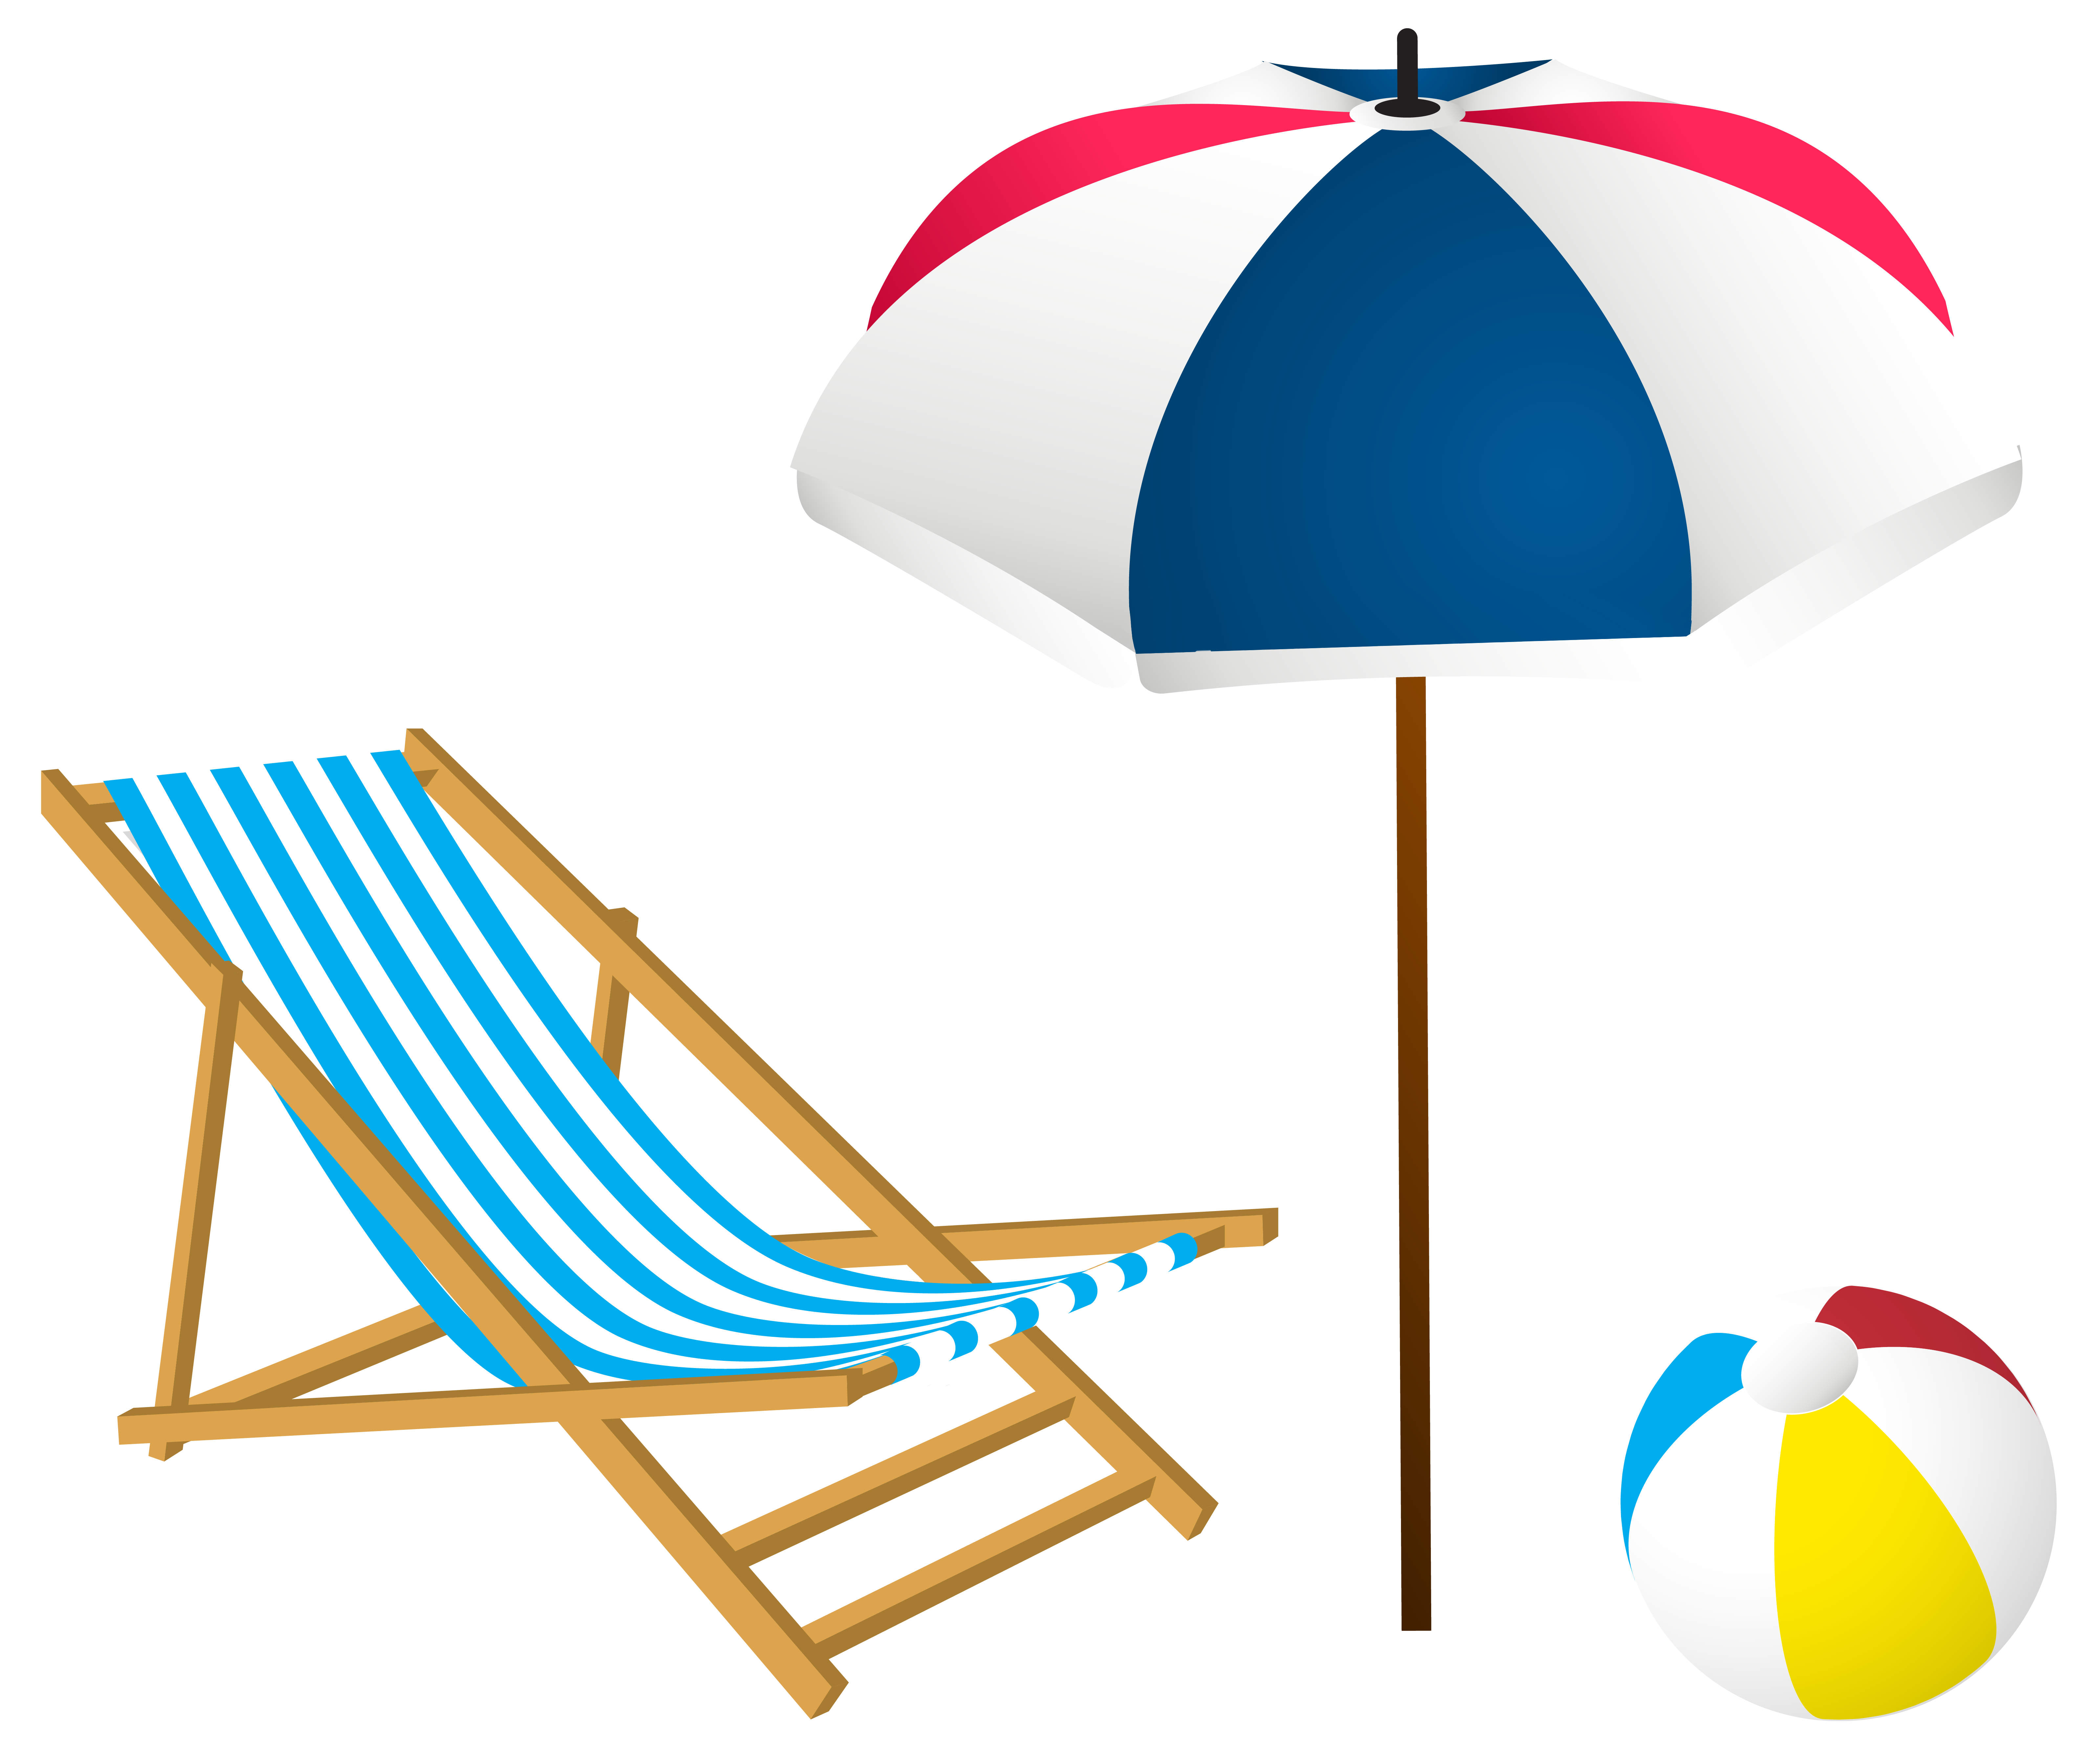 summer beach clipart at getdrawings com free for personal use rh getdrawings com summer border clip art black and white summer holiday border clip art